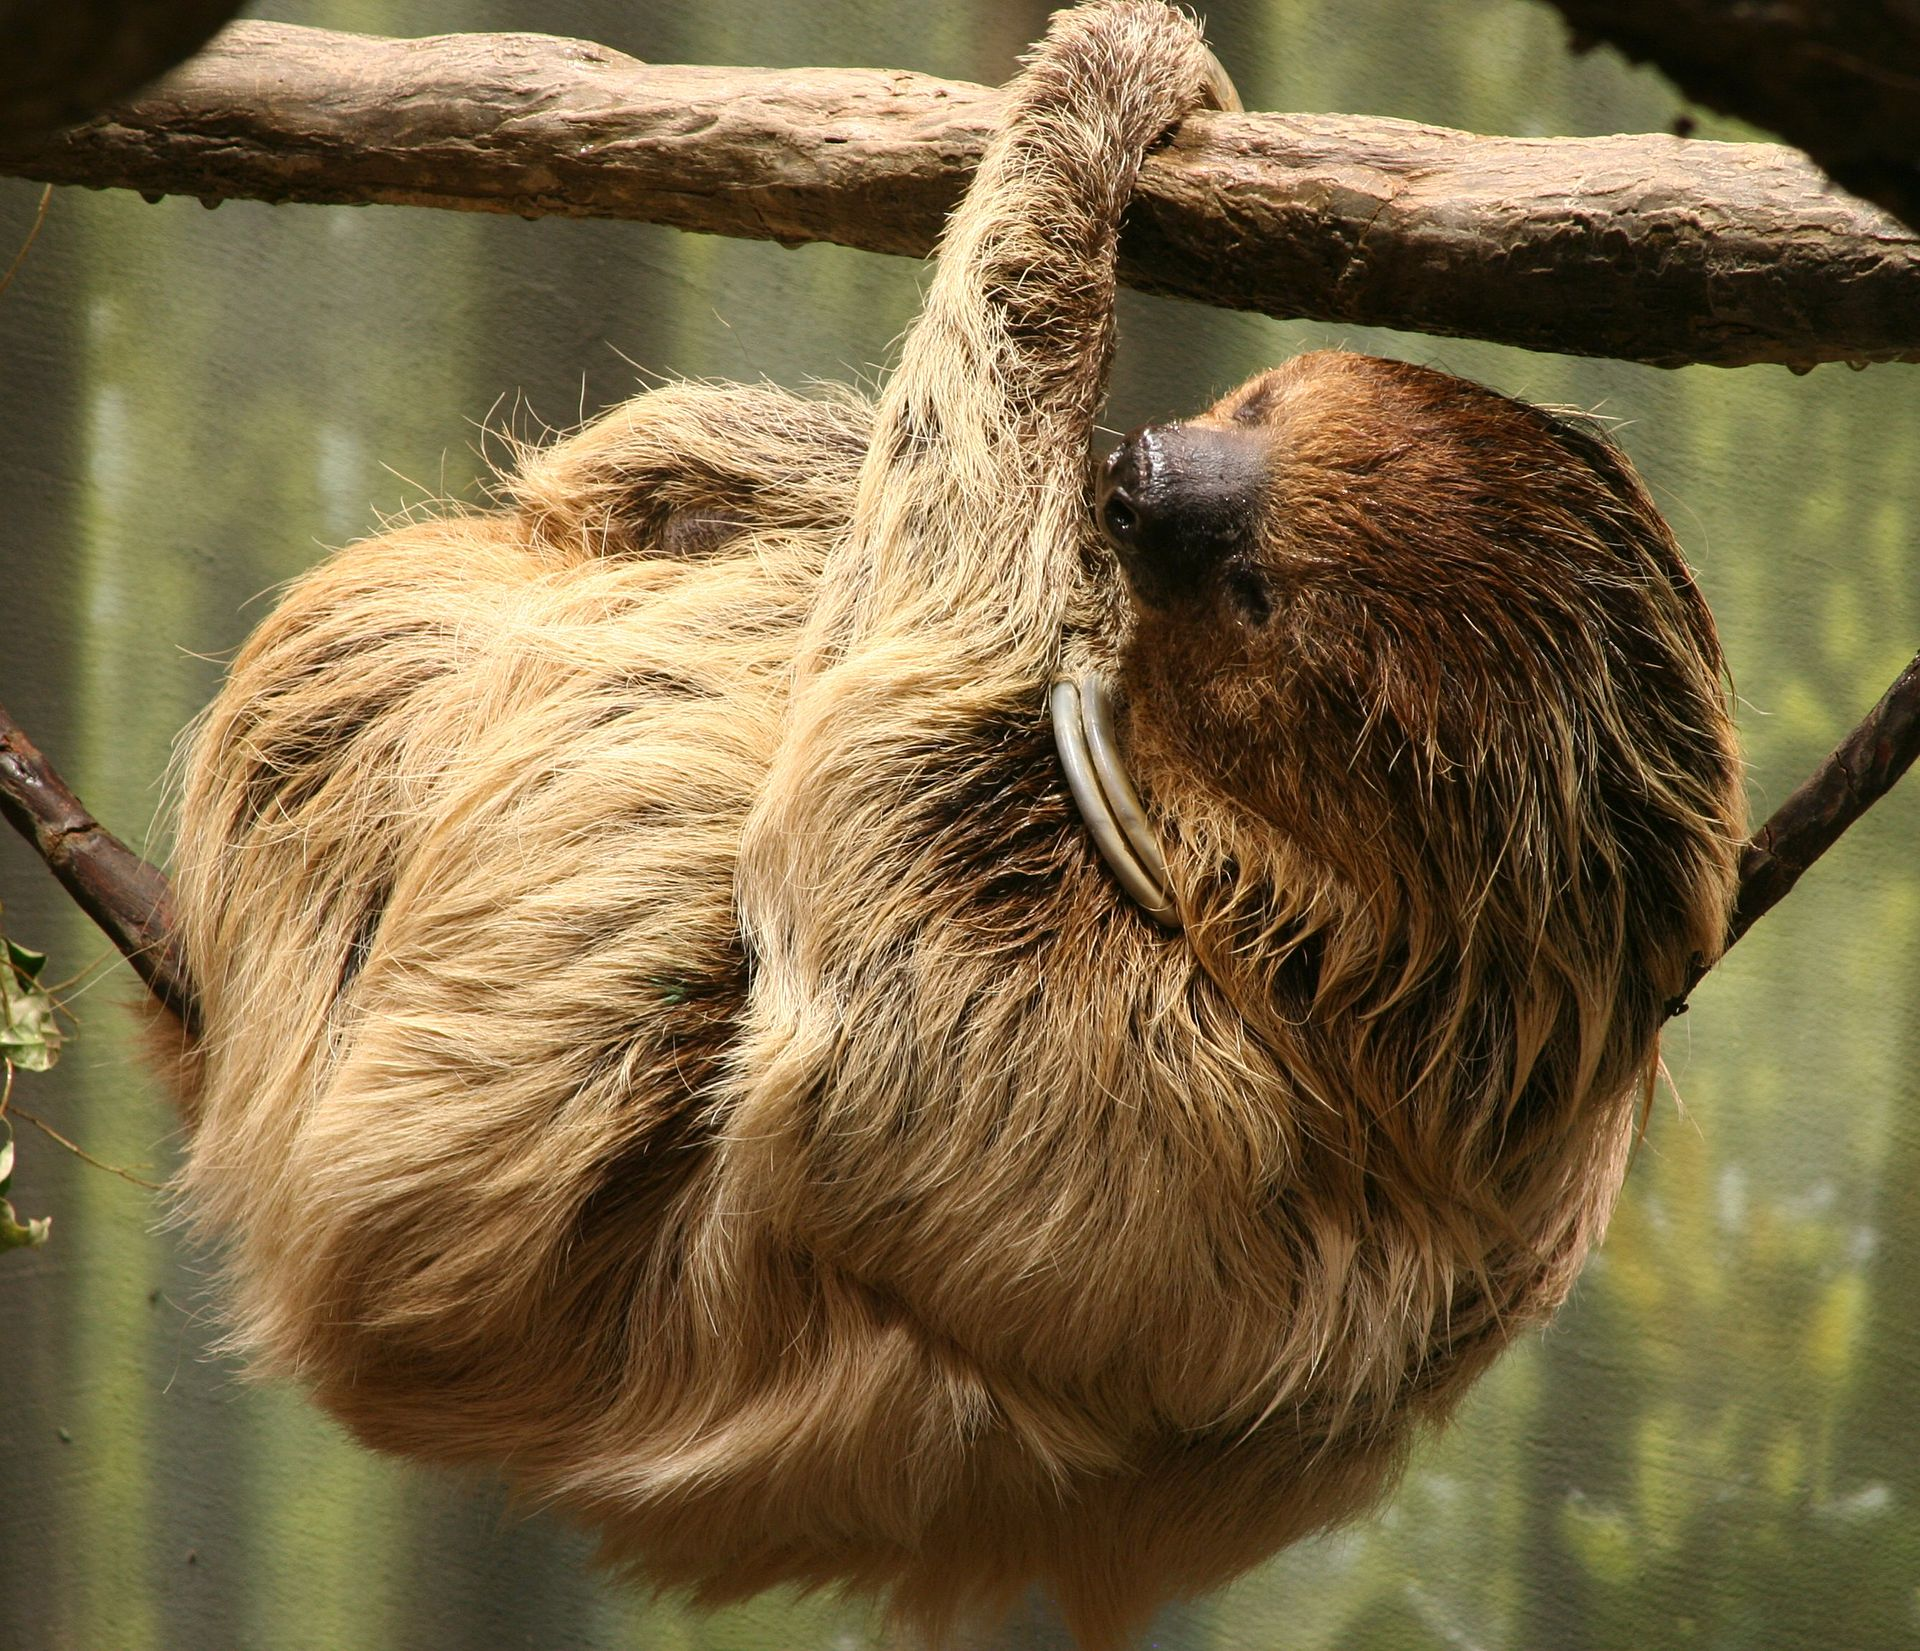 Two toed sloth Wikipedia